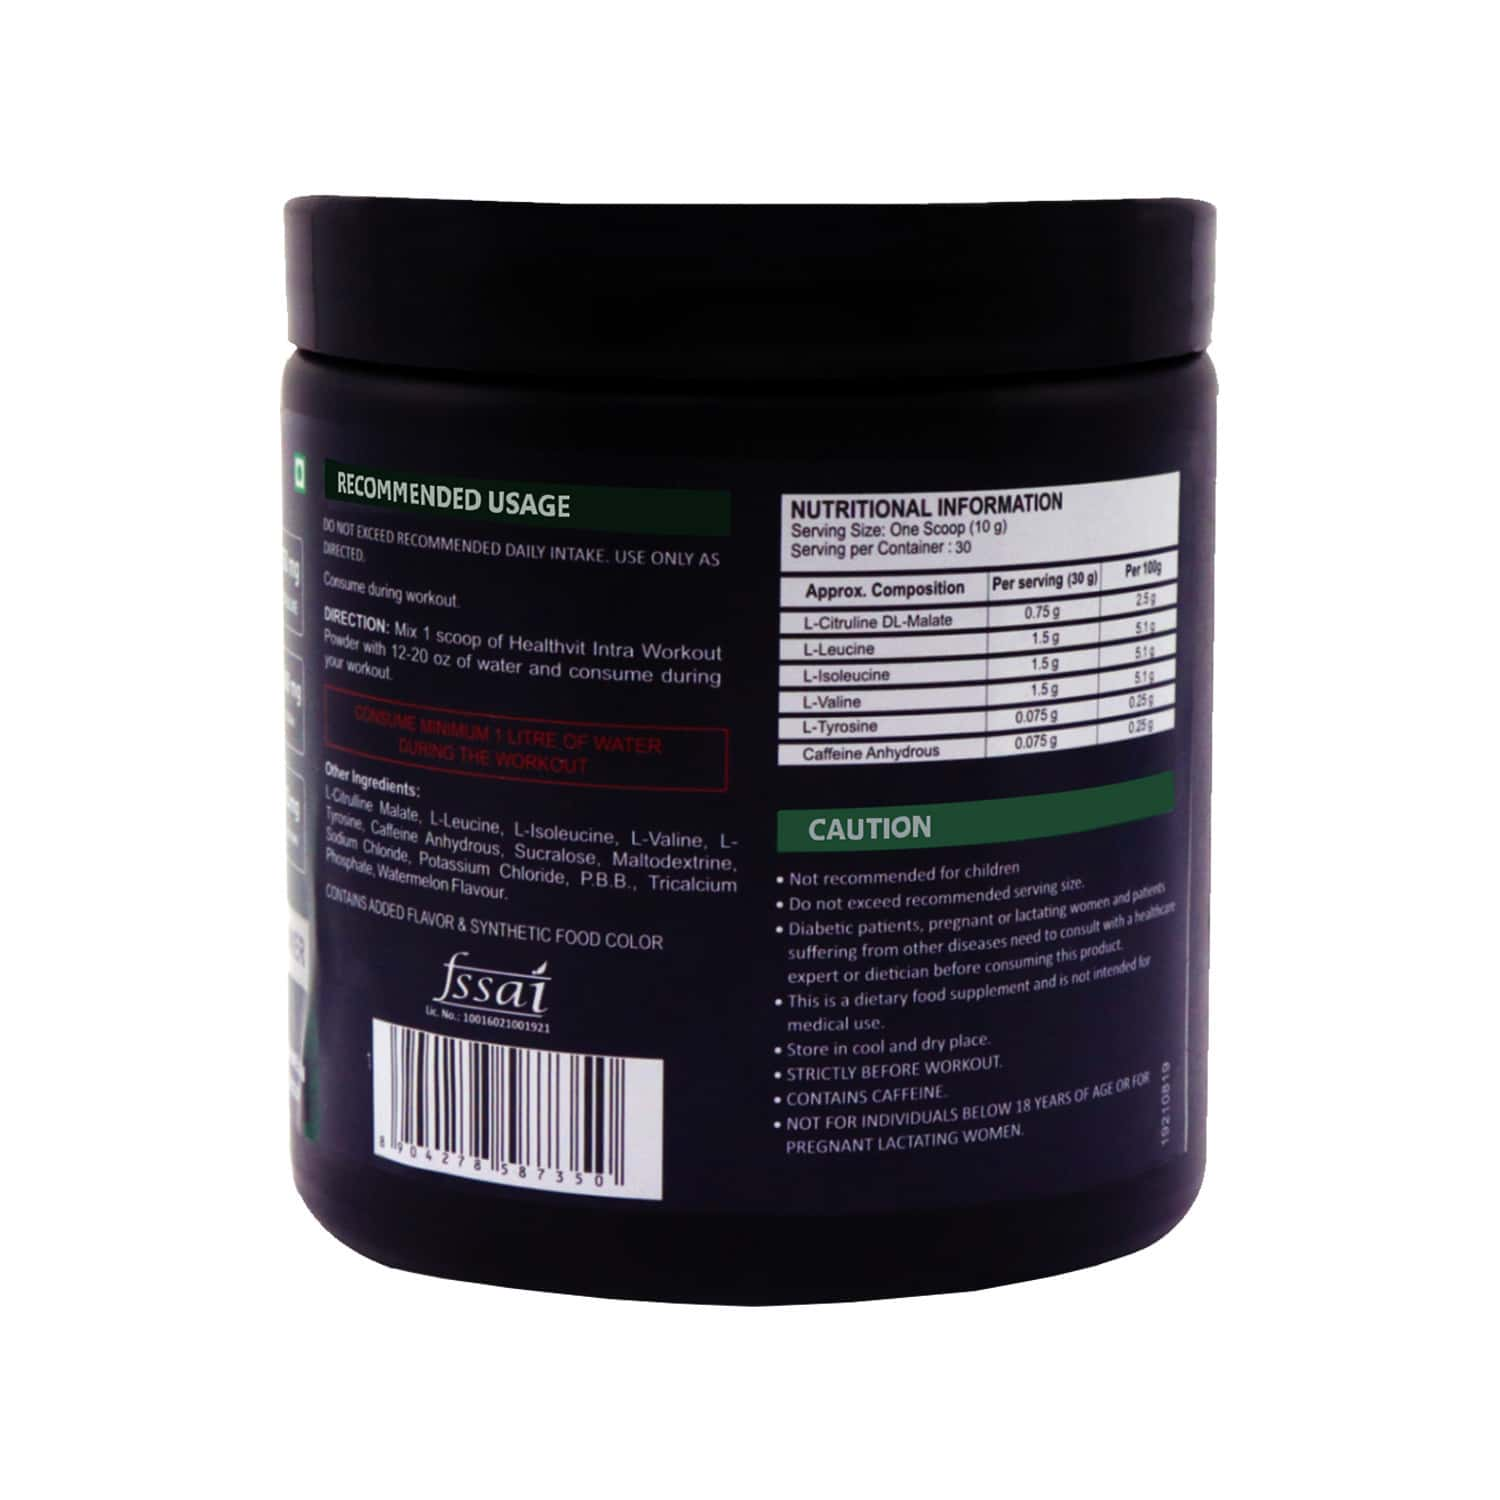 Healthvit Fitness Intra Workout Powder Advanced Formula - Watermelon Flavour - 300gm